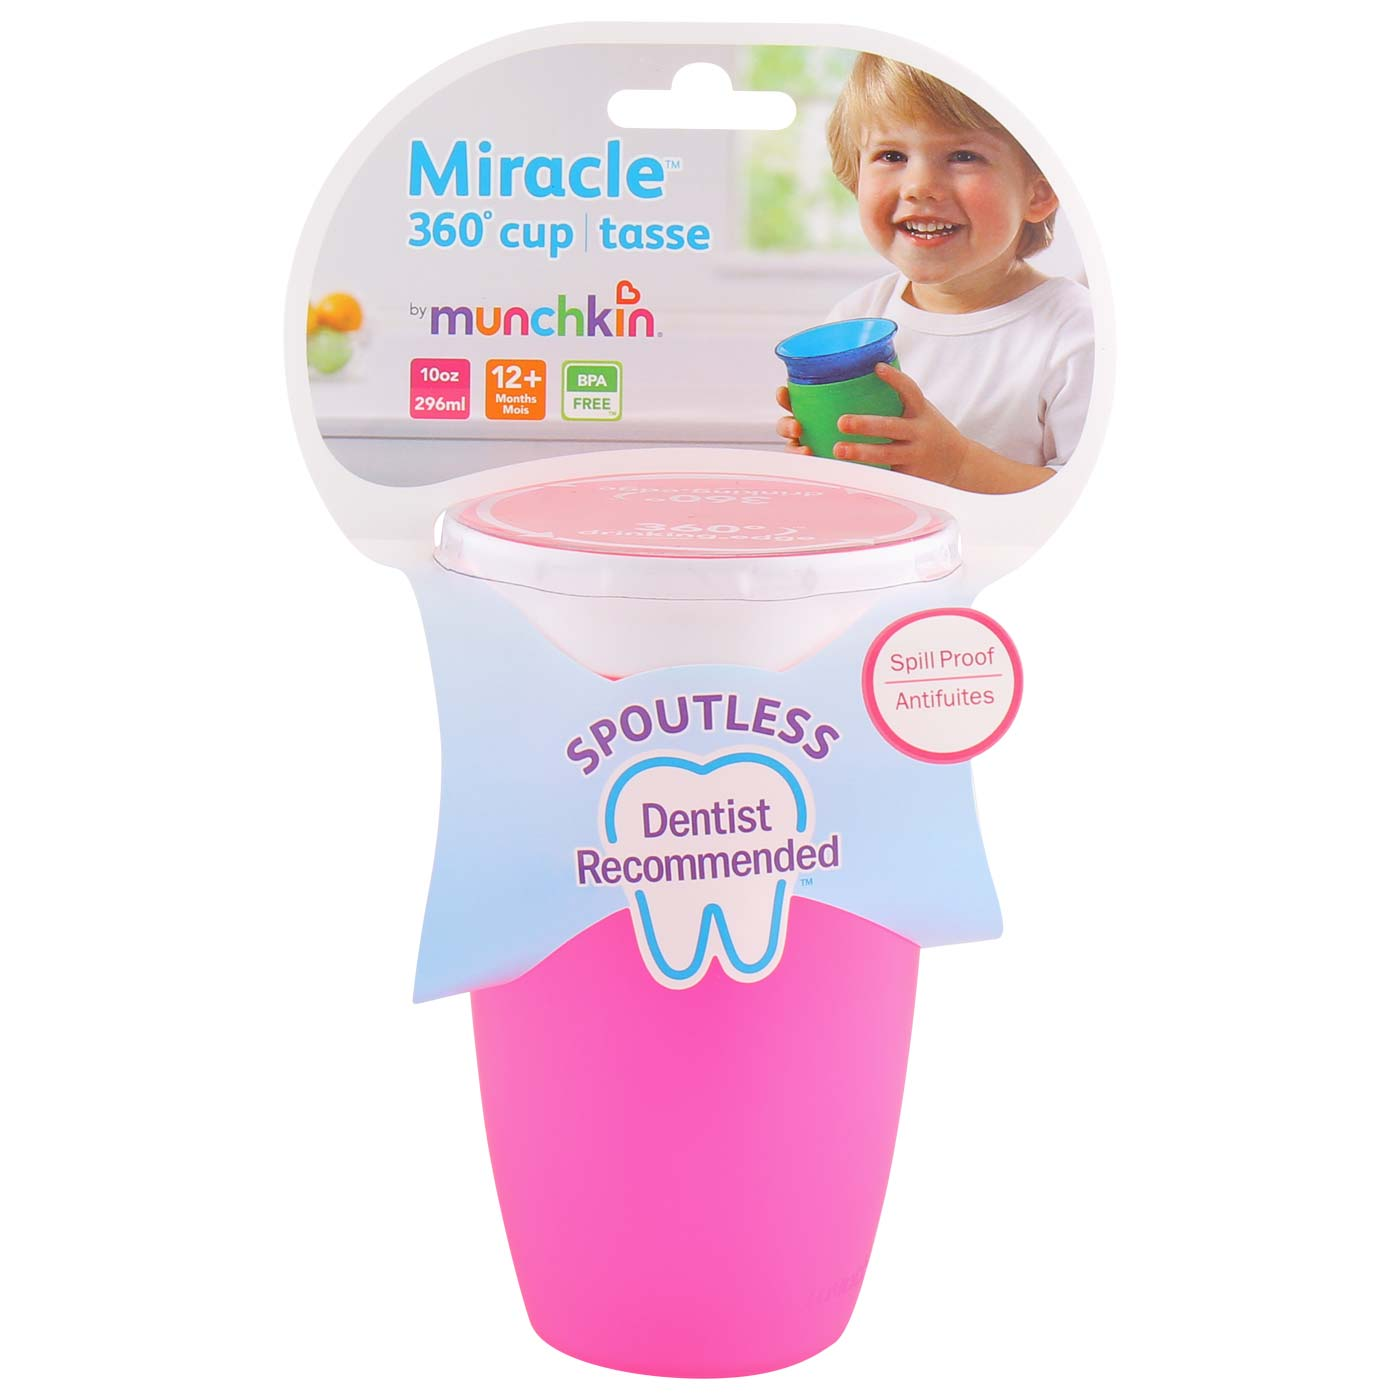 Munchkin Miracle 360 Sippy cup 296ml Pink White